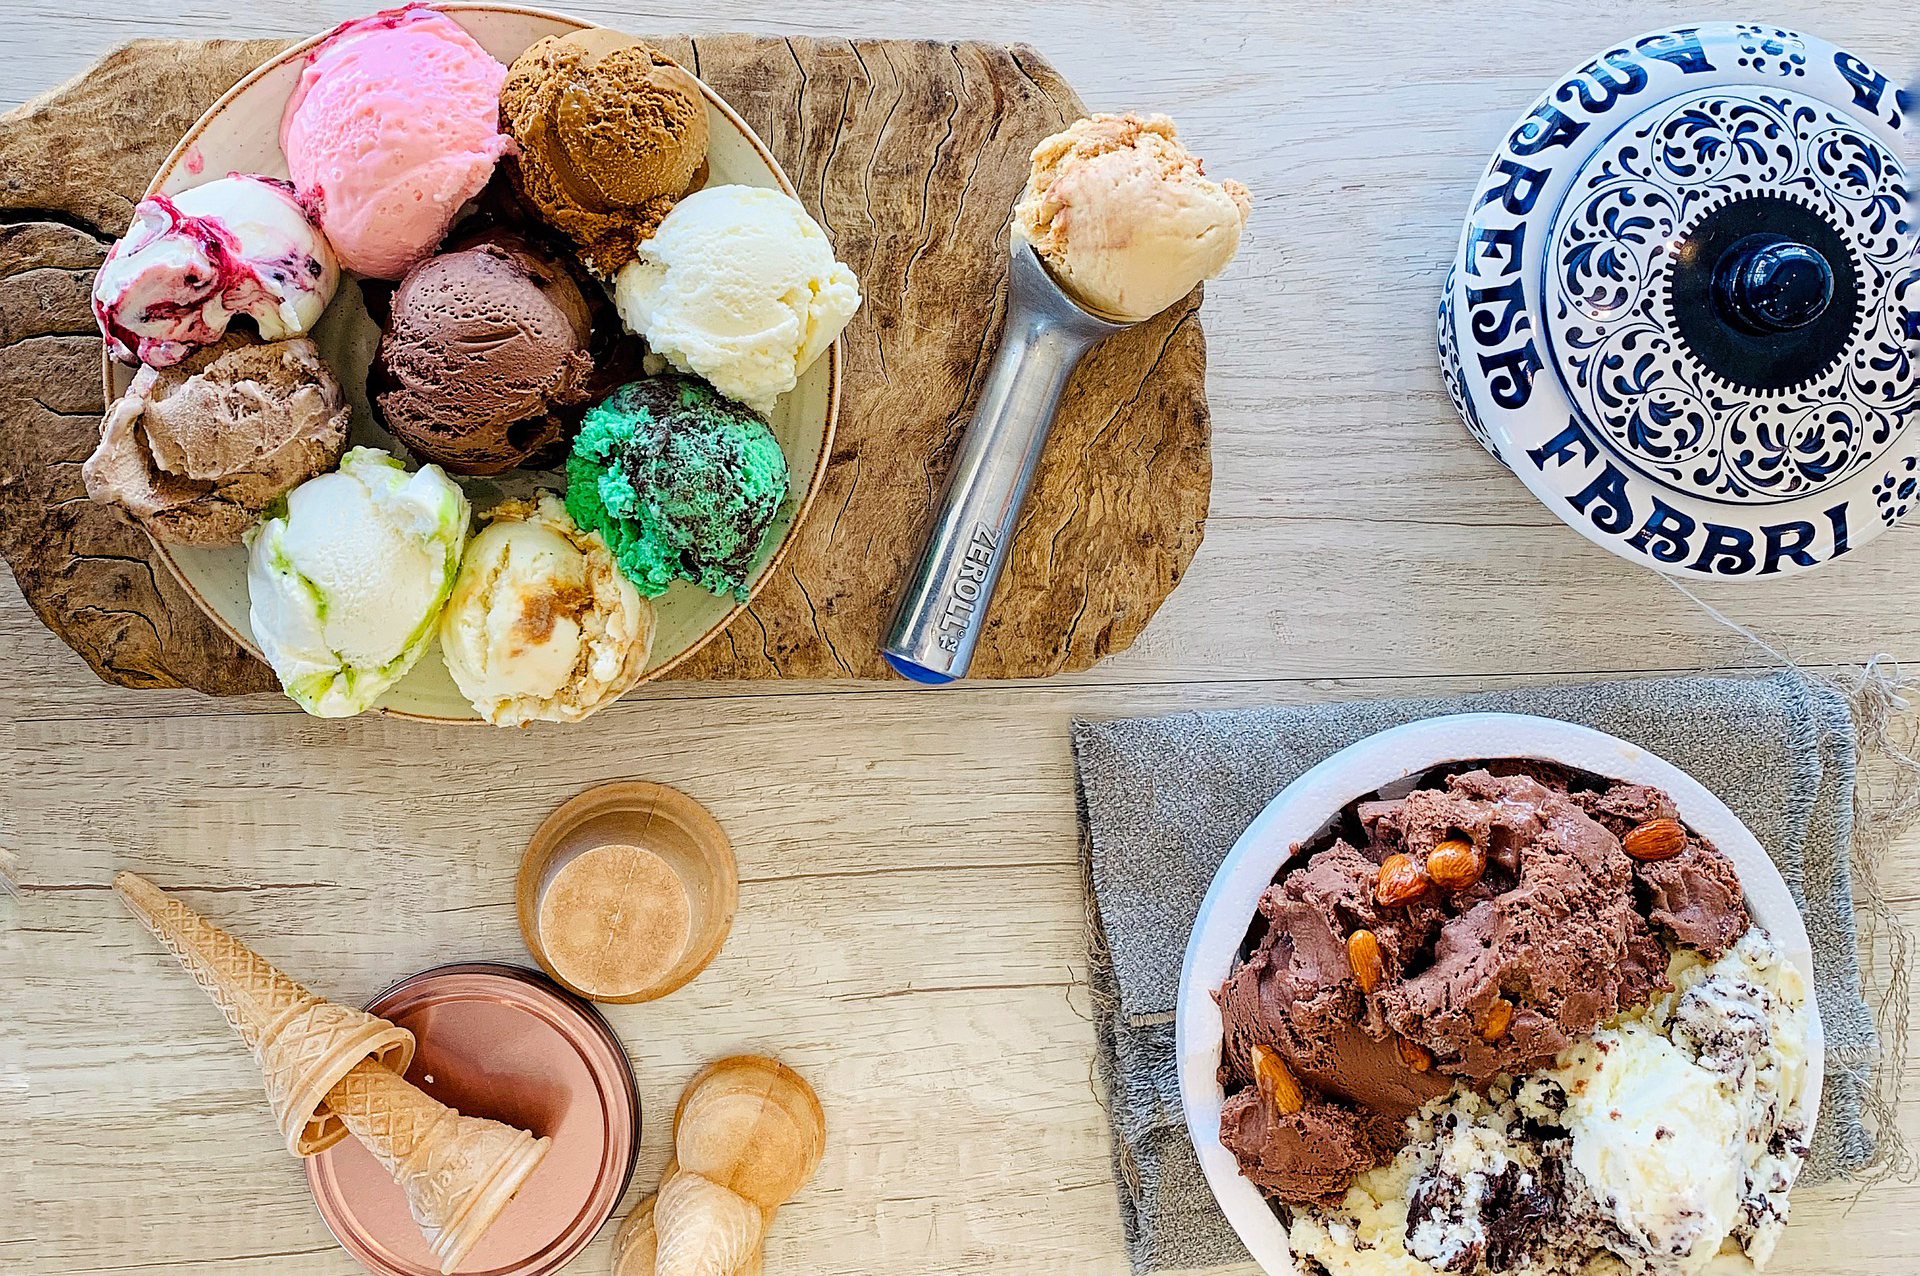 Ice cream scoops, scooper, cones, and sundae bowl on table.